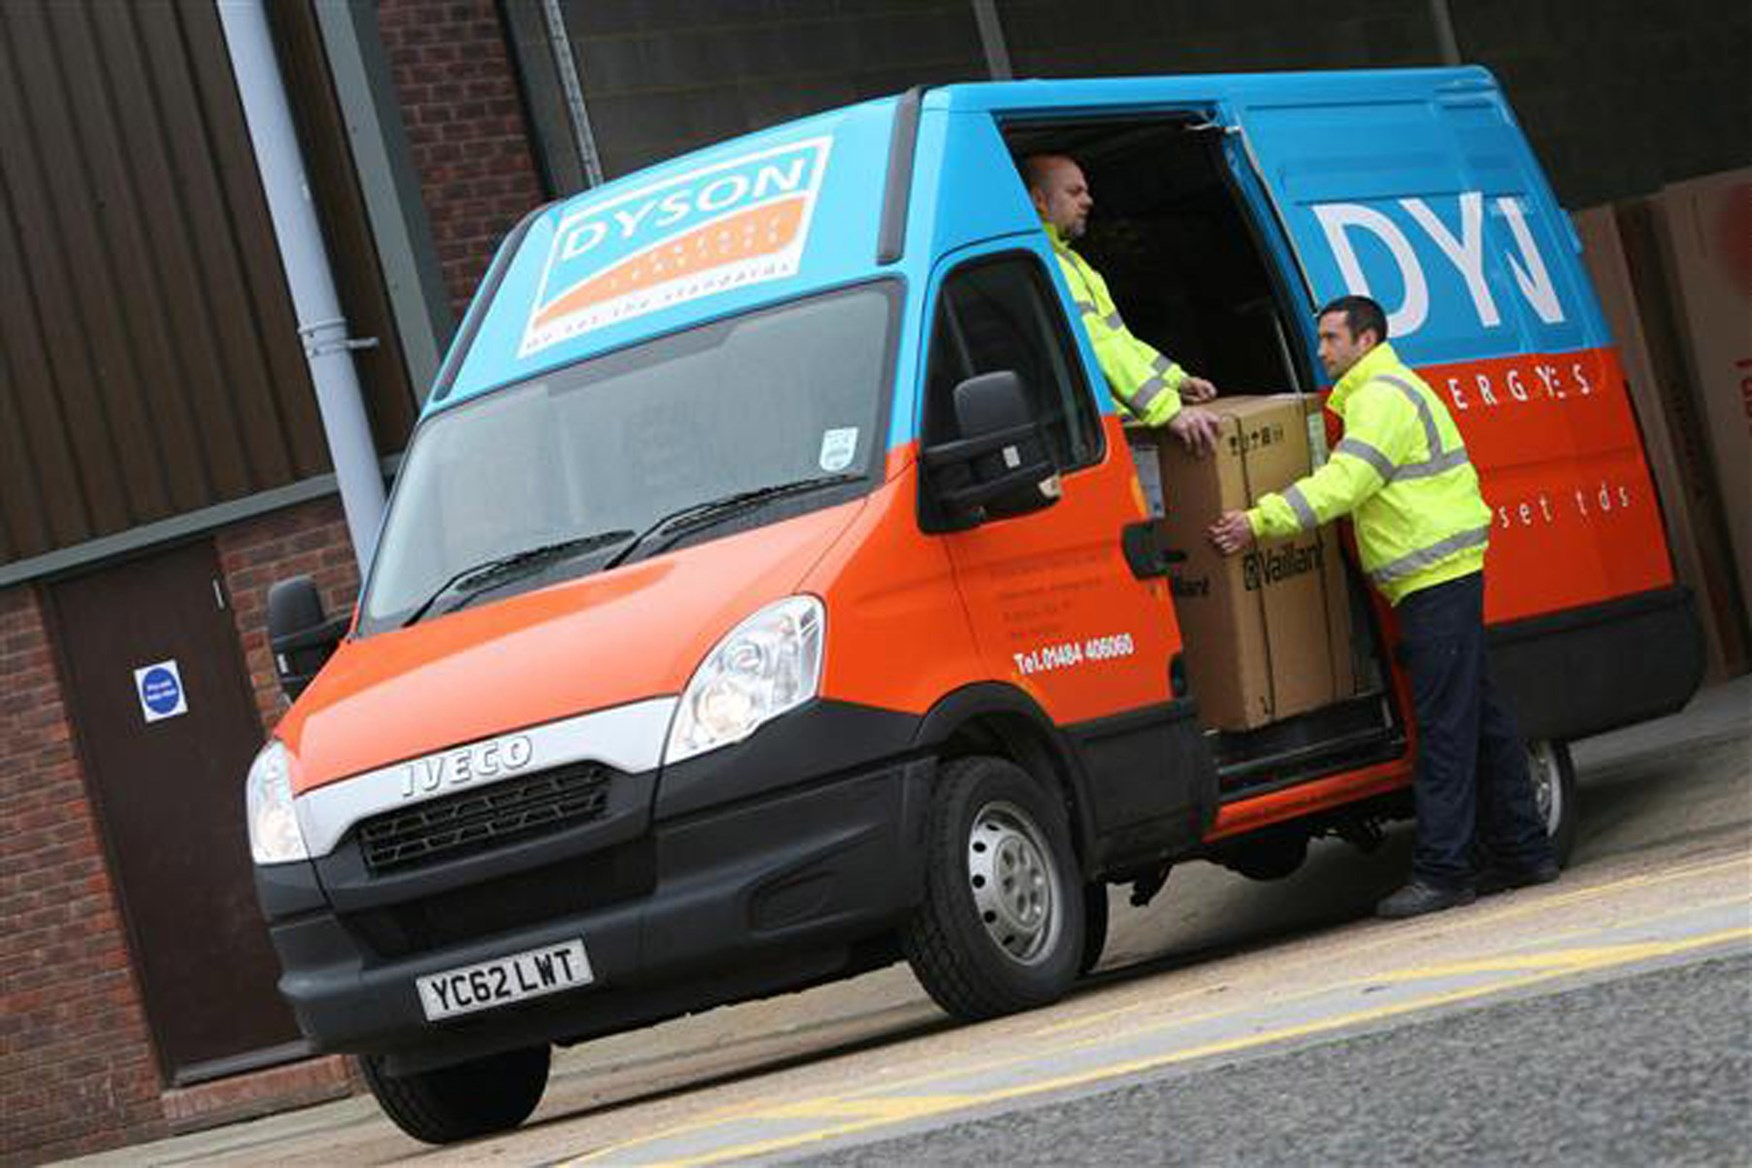 Iveco Daily 2009-2012 review on Parkers Vans - dimensions and load access